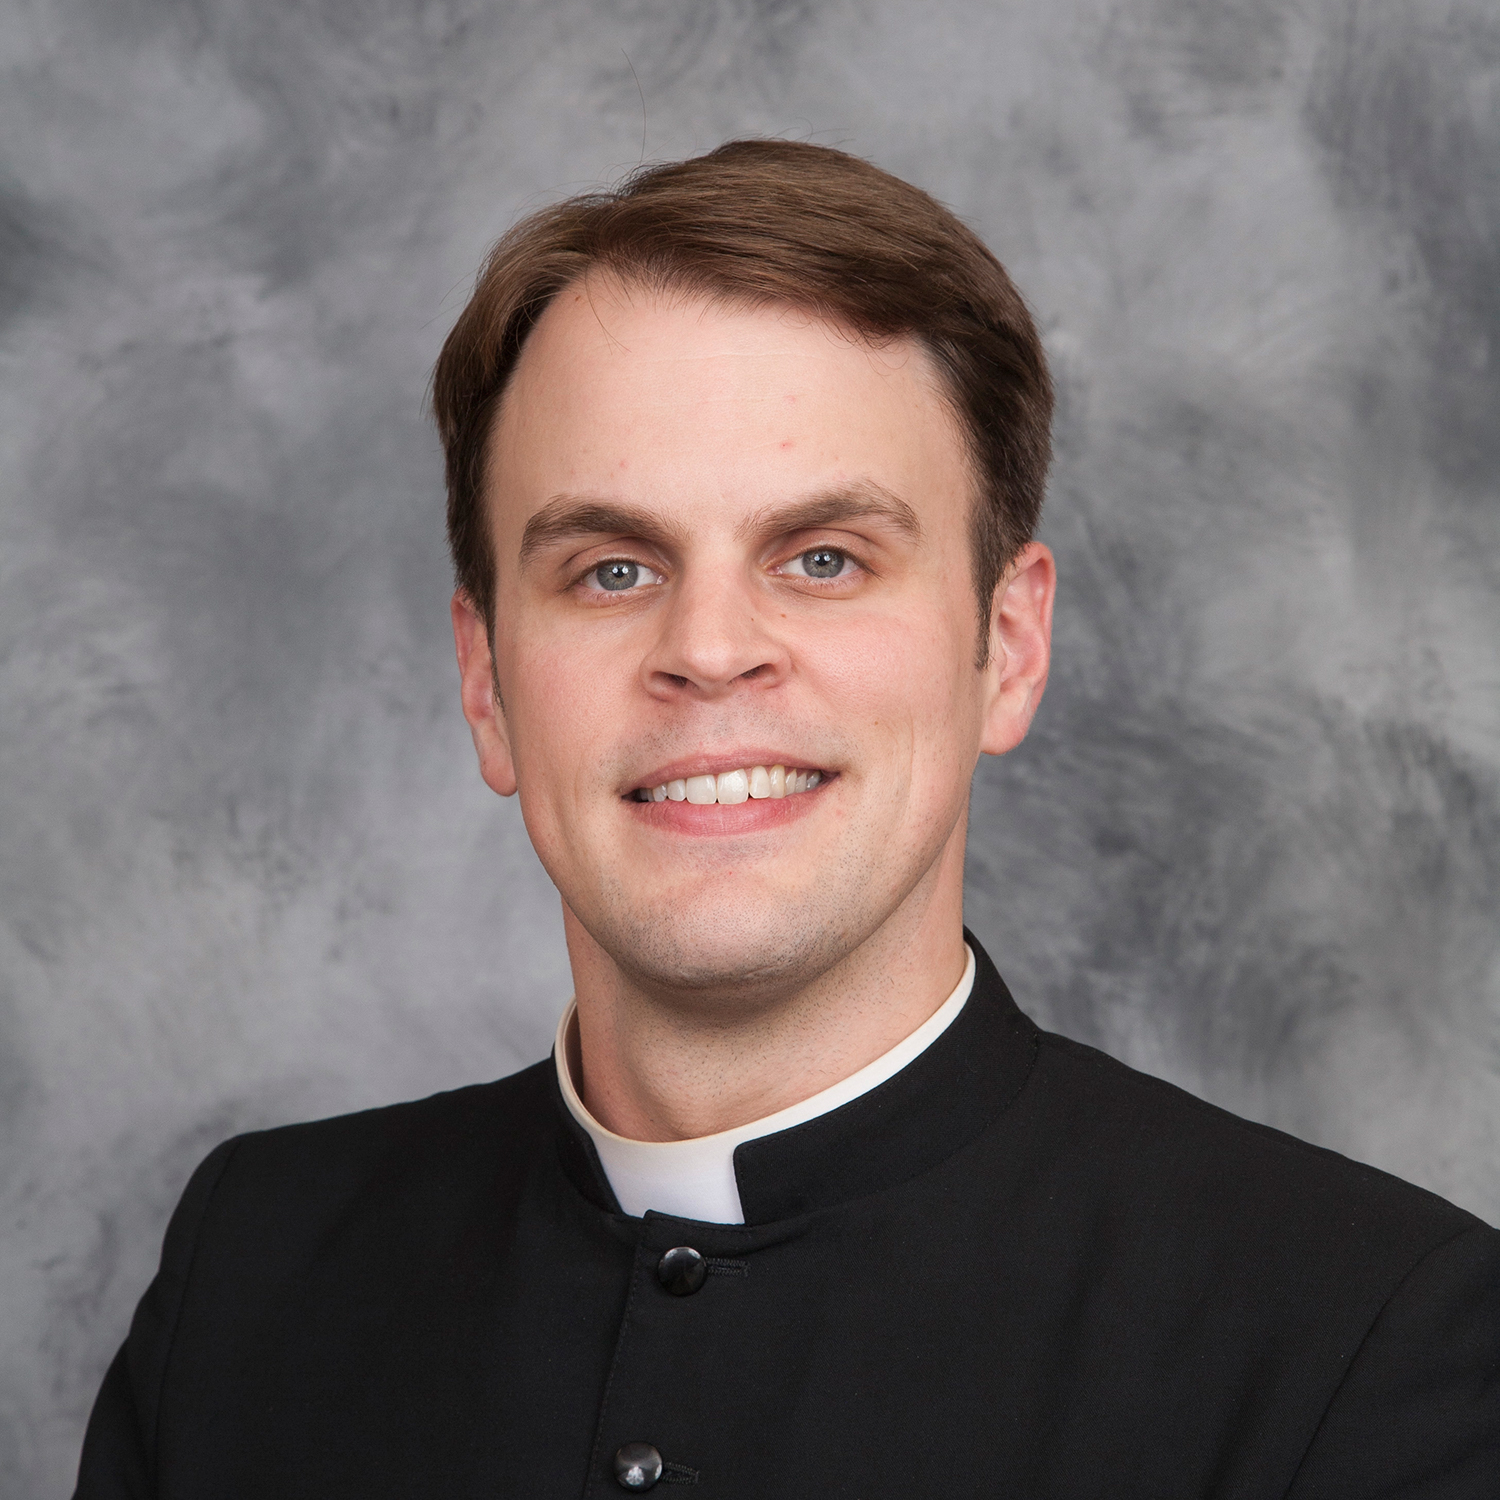 Bio-Decker-Christopher-Rev-Fr.jpg